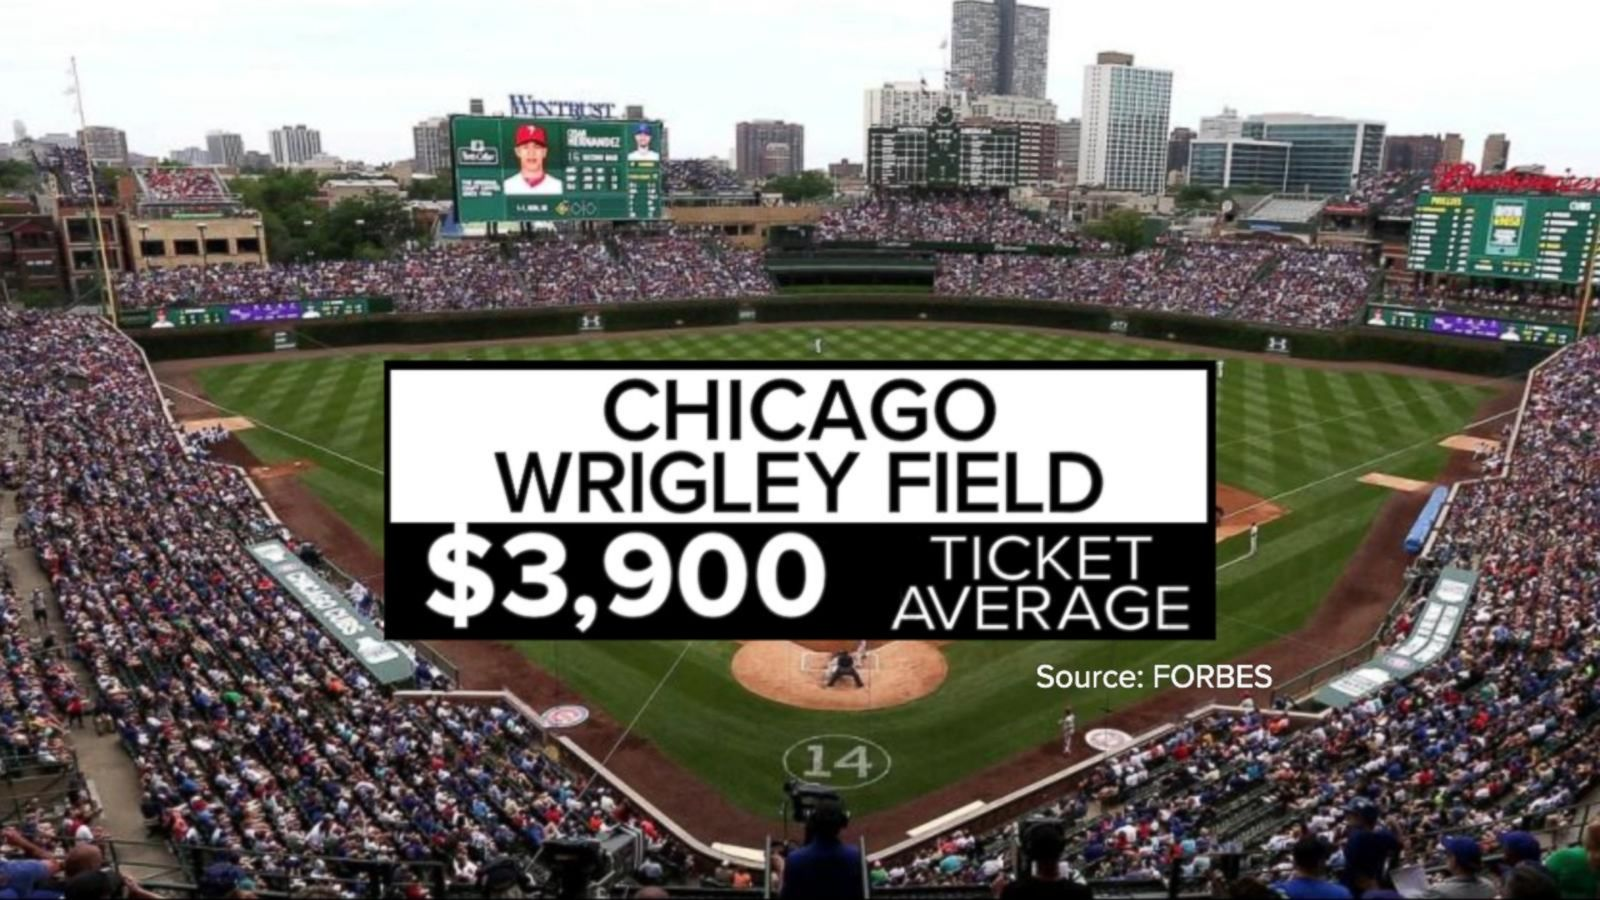 VIDEO: Record Prices for Historic World Series